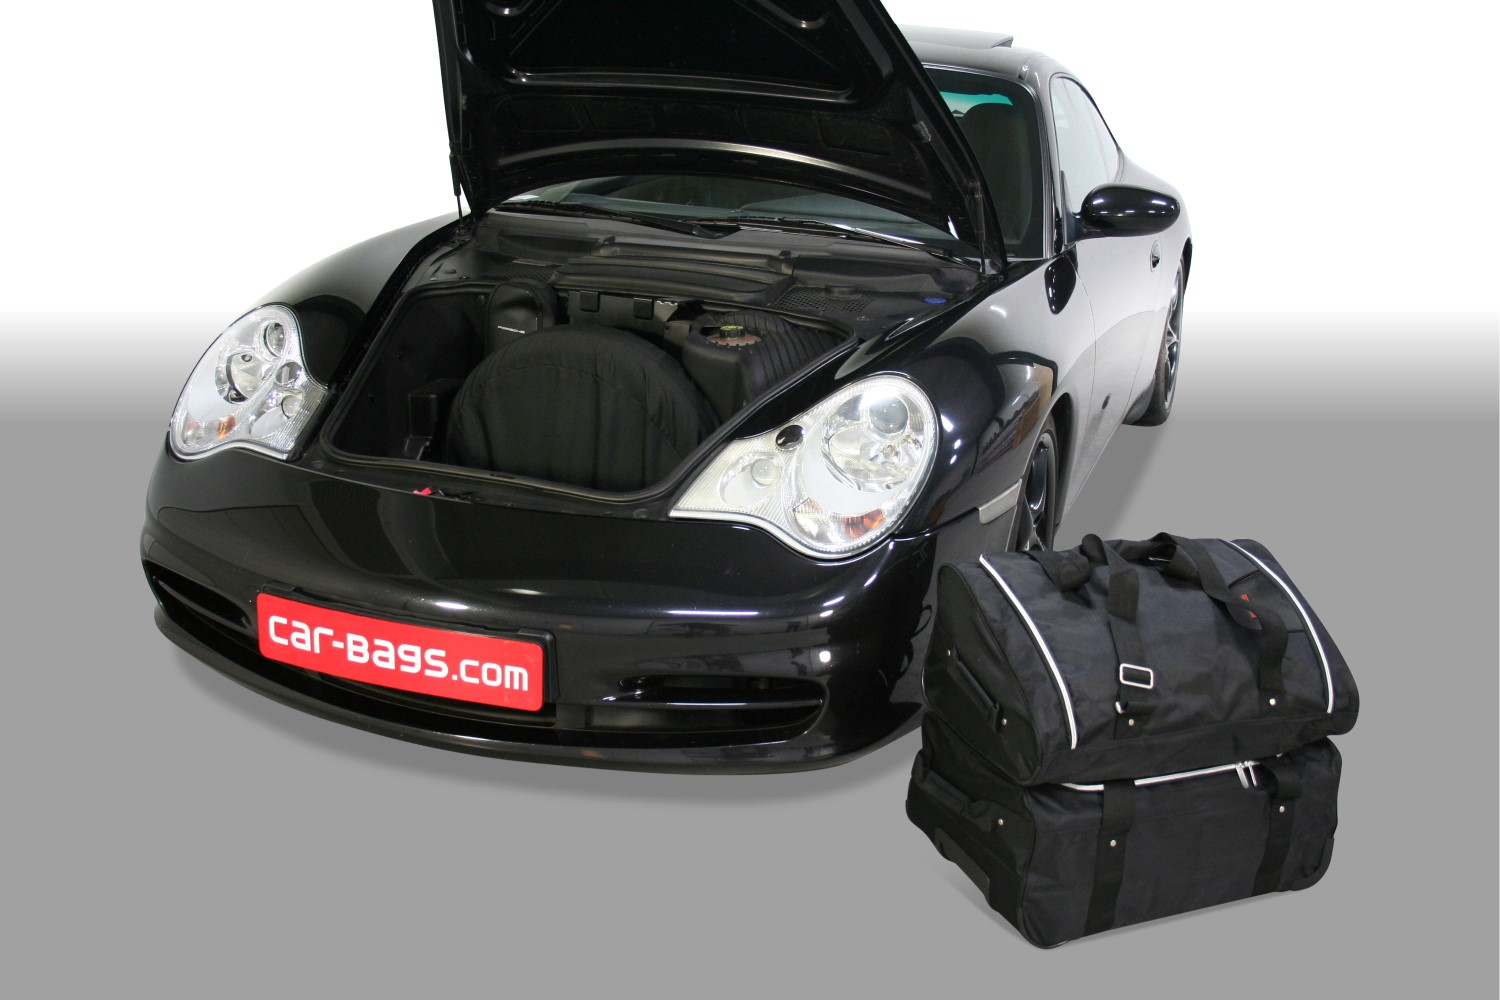 911 porsche 911 996 1997 2006 car bags travel bags 2wd 4wd with cd changer in luggage space. Black Bedroom Furniture Sets. Home Design Ideas